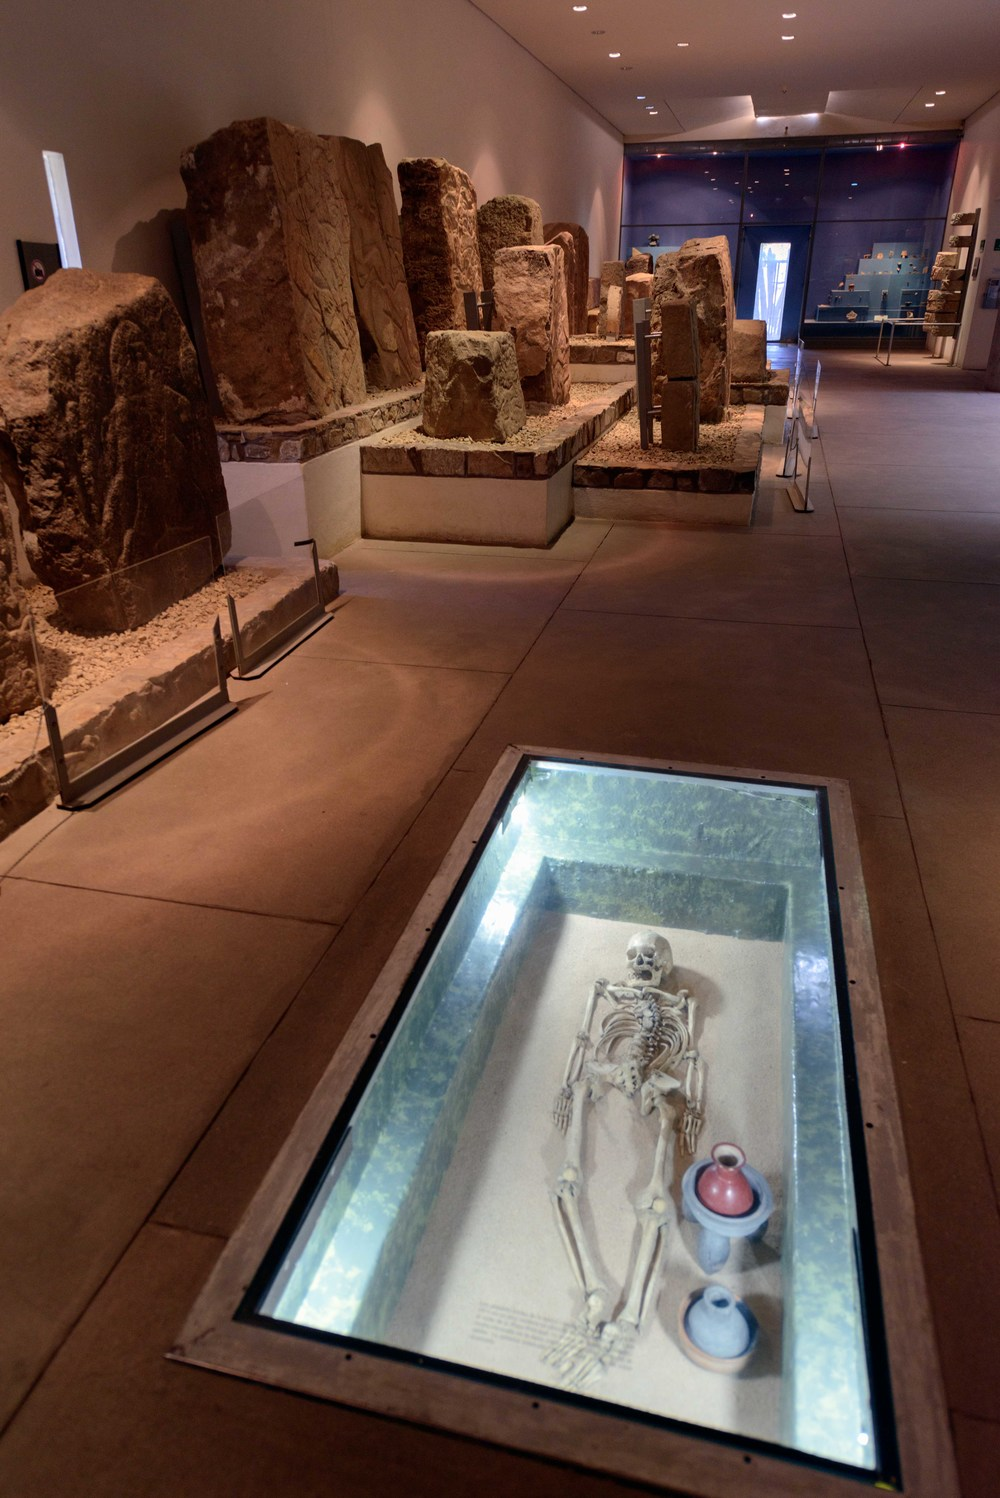 Steles collection and burial practices of the Zapotecs from the site museum at Monte Alban, Oaxaca, Mexico.